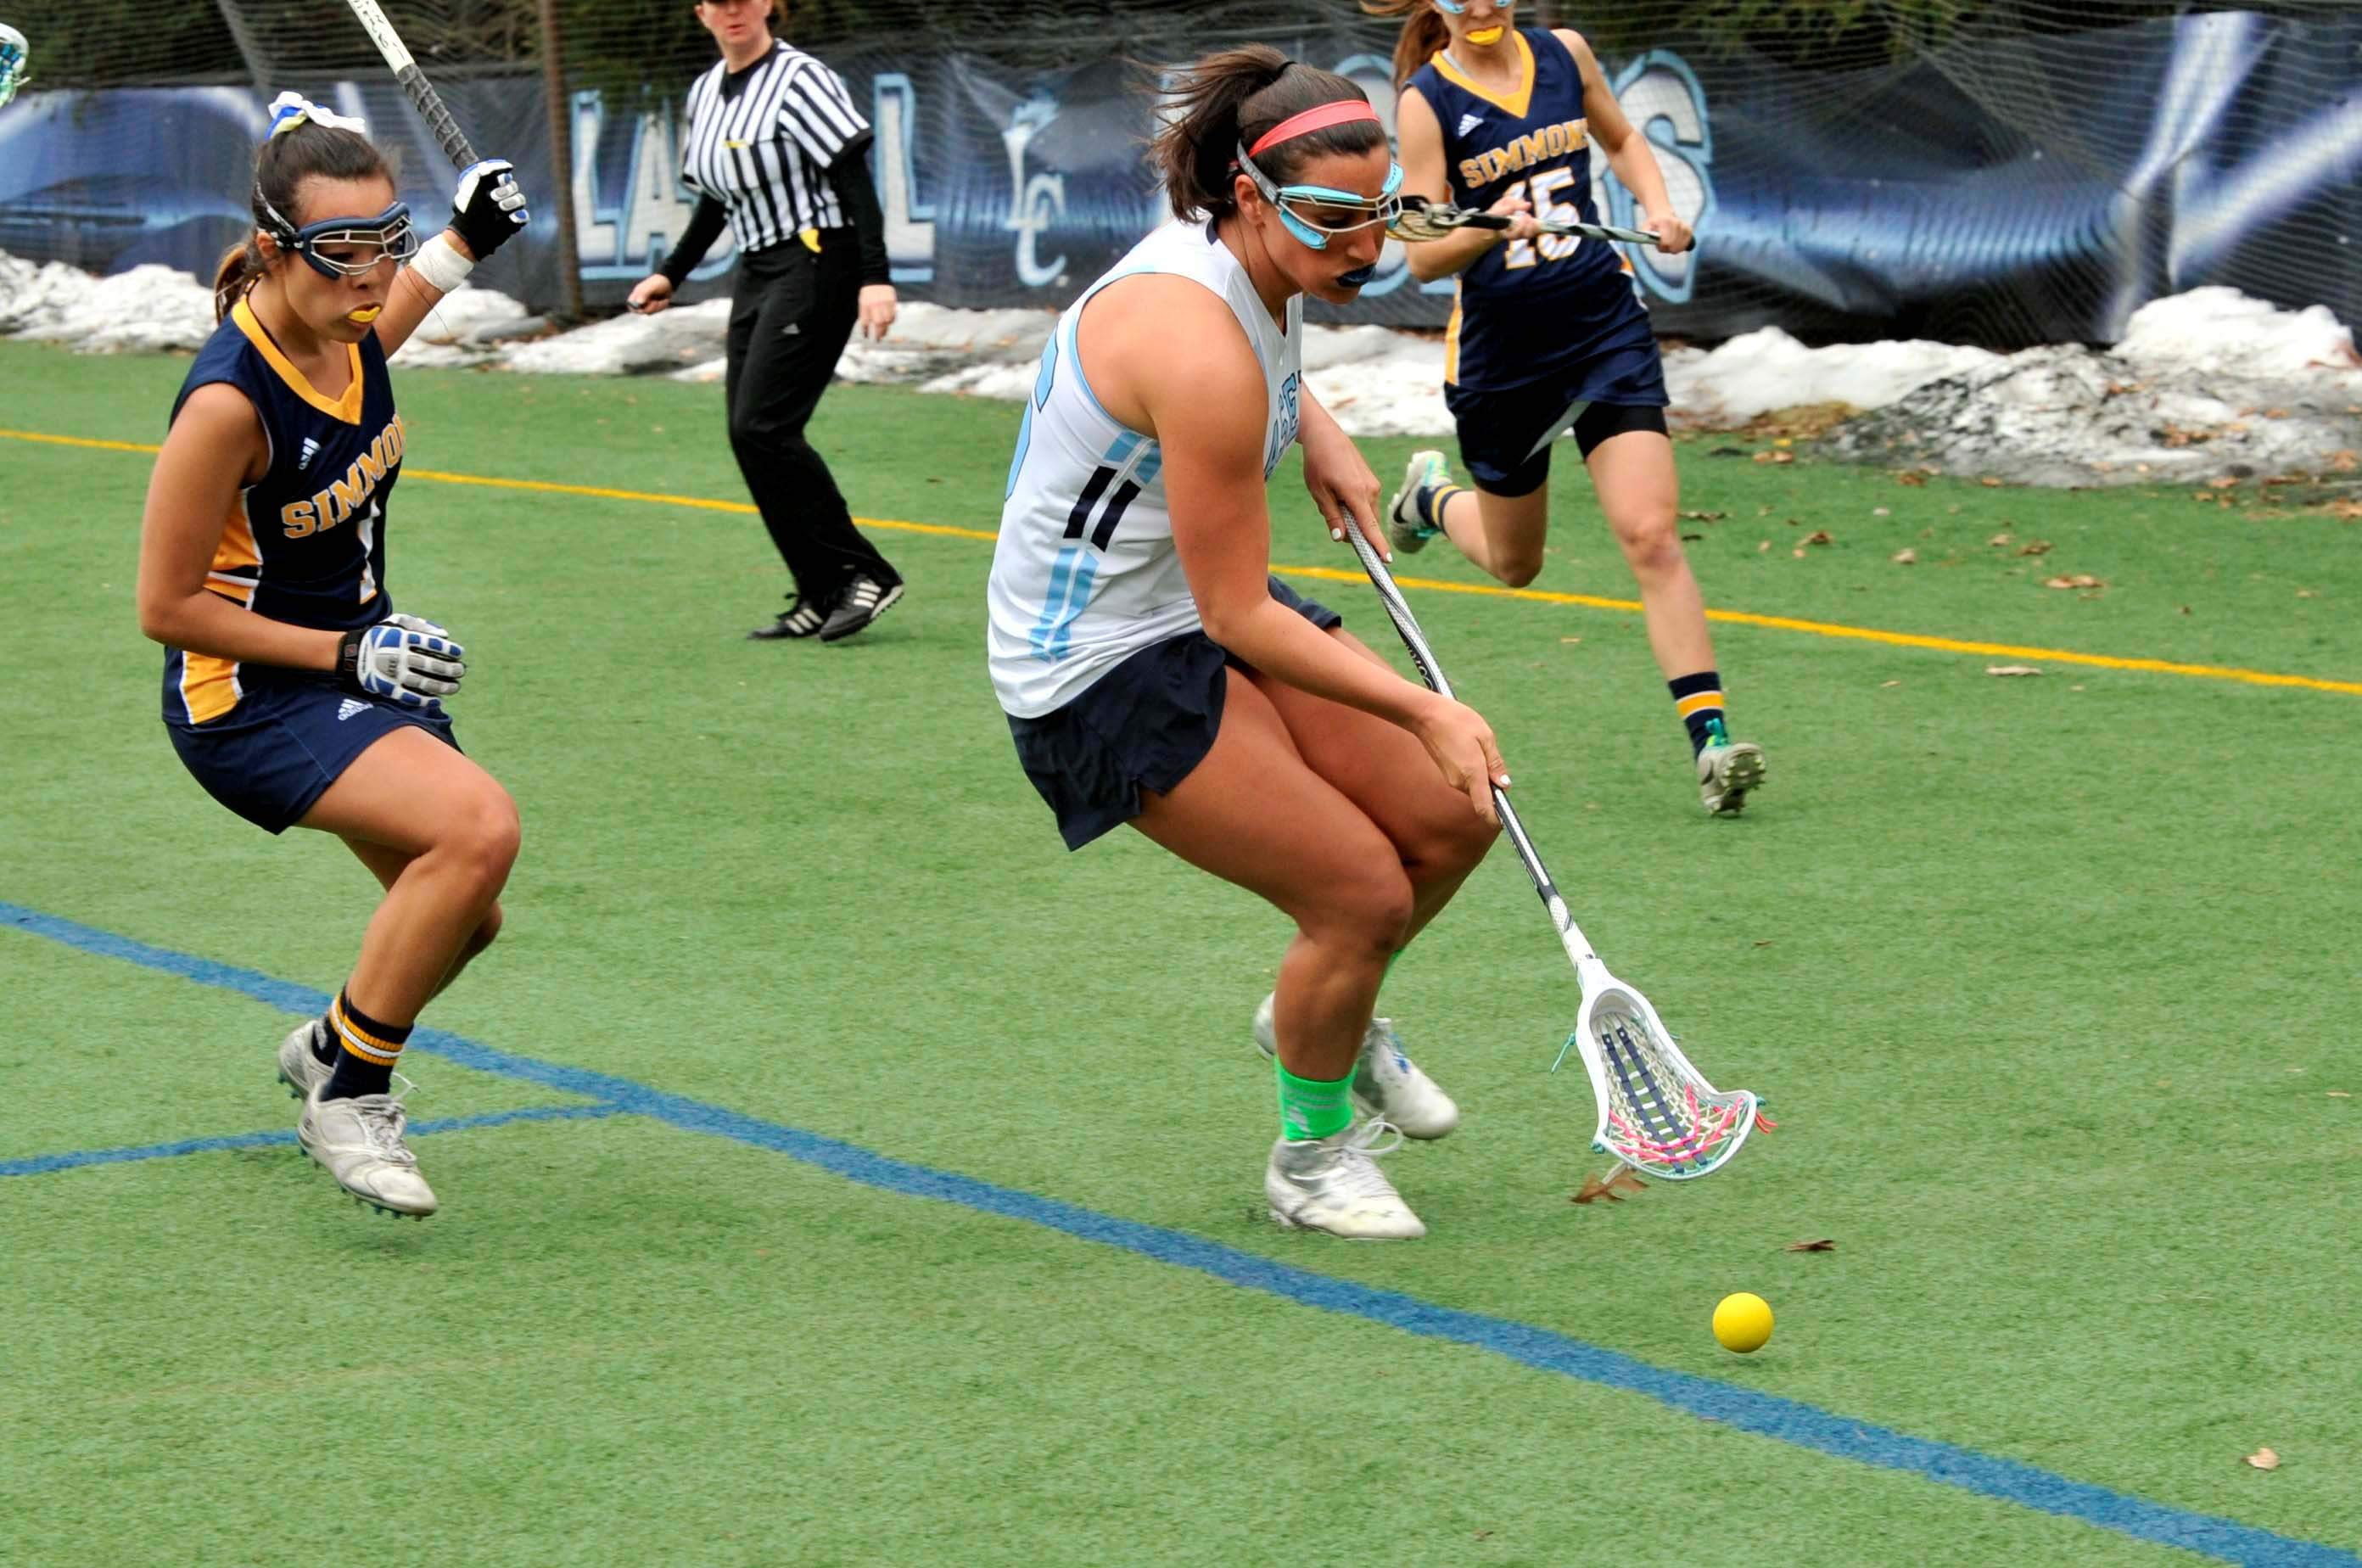 Women's Lacrosse Bounces Back with 24-12 Win at Mount Ida